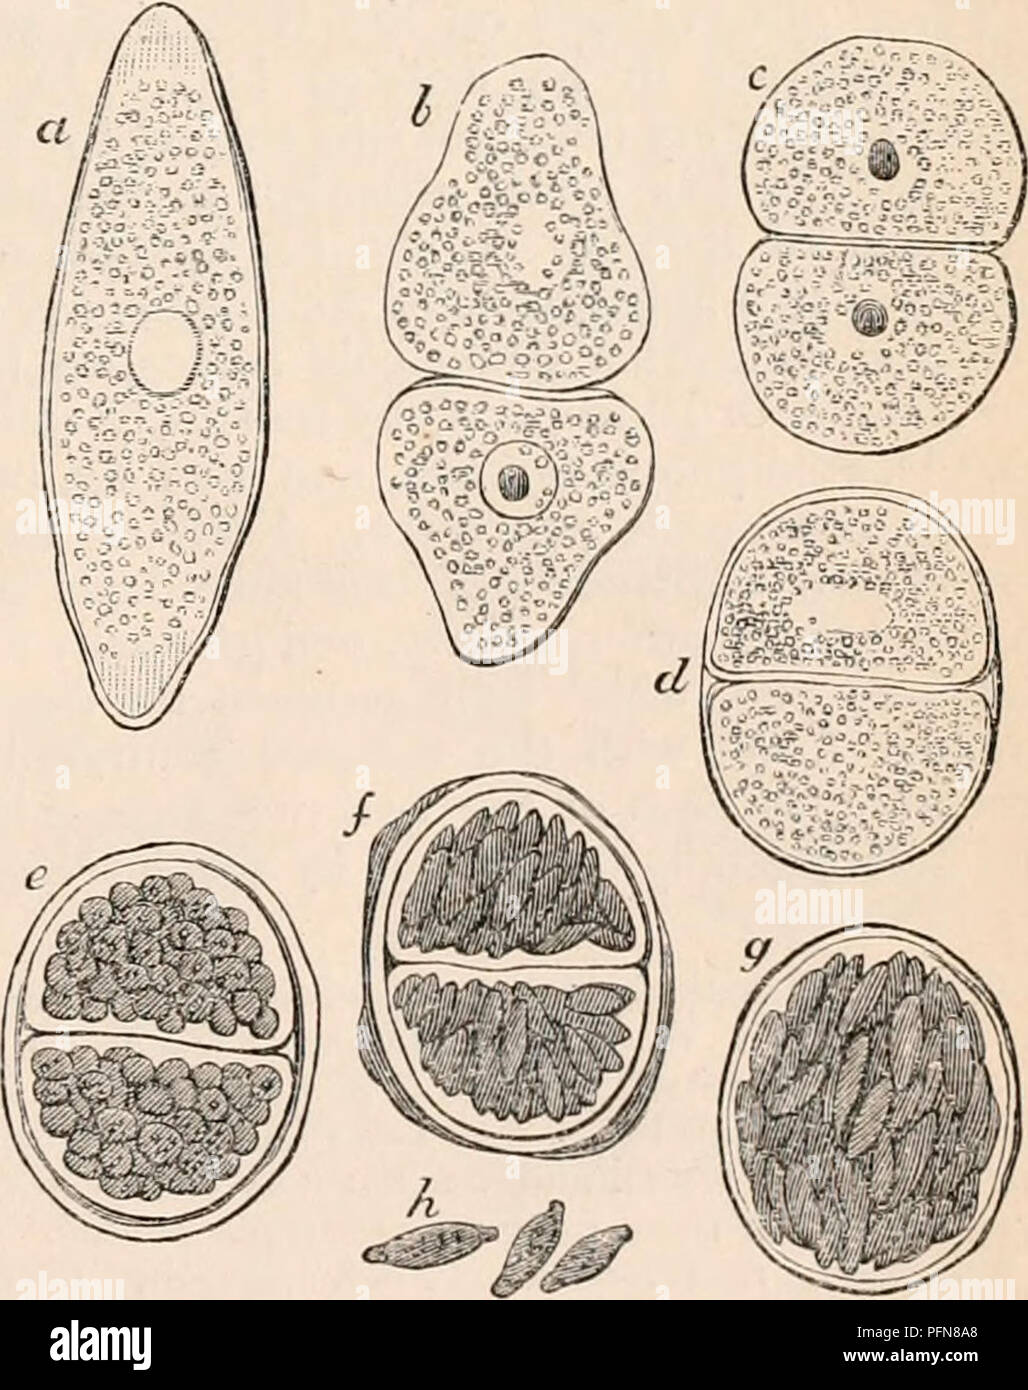 . The cyclopædia of anatomy and physiology. Anatomy; Physiology; Zoology. each presenting two contractile vesicles like the parent. The escape of these bodies, by their passage through an aperture temporarily formed in the wail of the infusorian, was carefully observed; the exit of each embryo occupied about twenty minutes. Soon after their escape they exhibited active ciliary mo- tion, and moved about with all the appearance of embryo-infusoria. Although the farther development of these bodies was not traced, the observations on this animal, and on an- other, the Urostyla grandis, afford suff - Stock Image